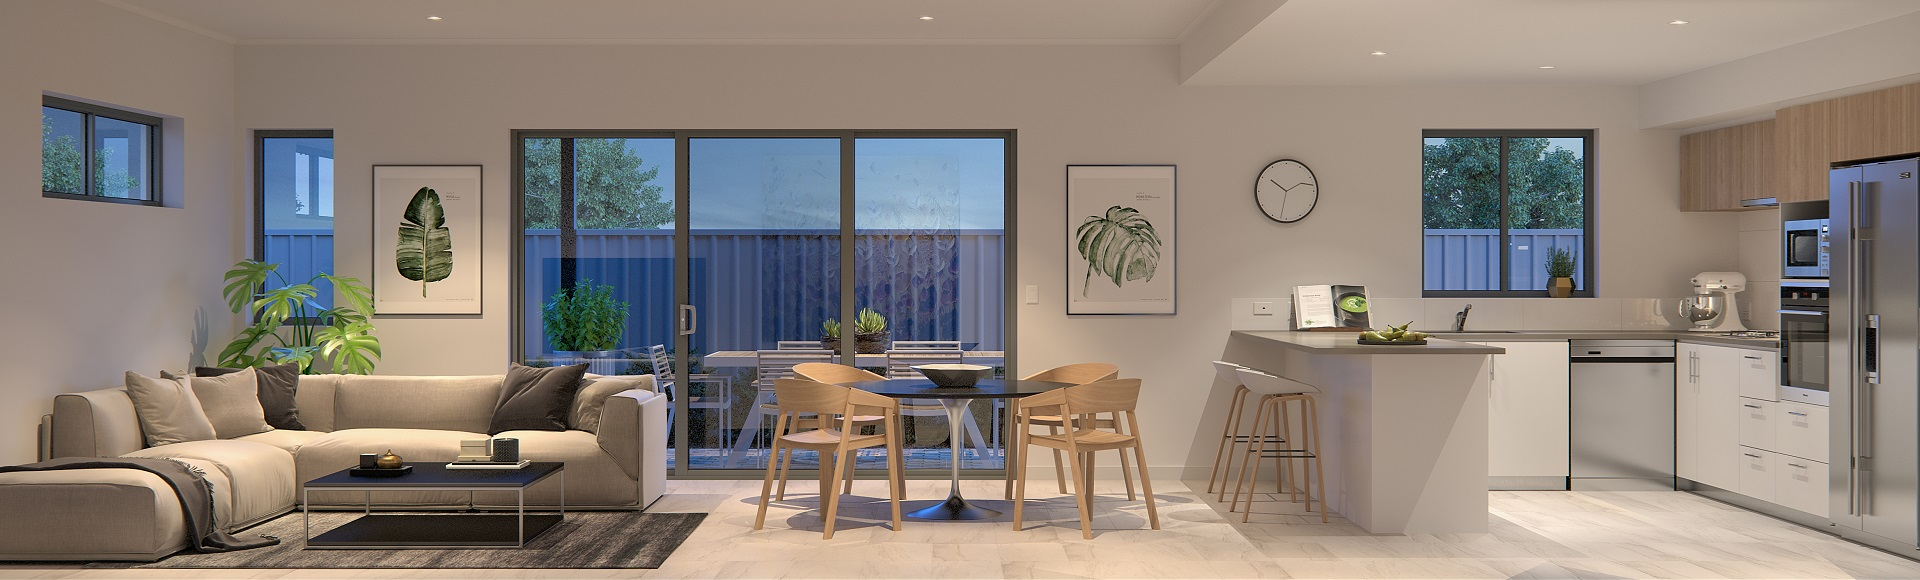 Open plan living, dining and kitchen with alfresco area at Aspire by Stockland at Calleya